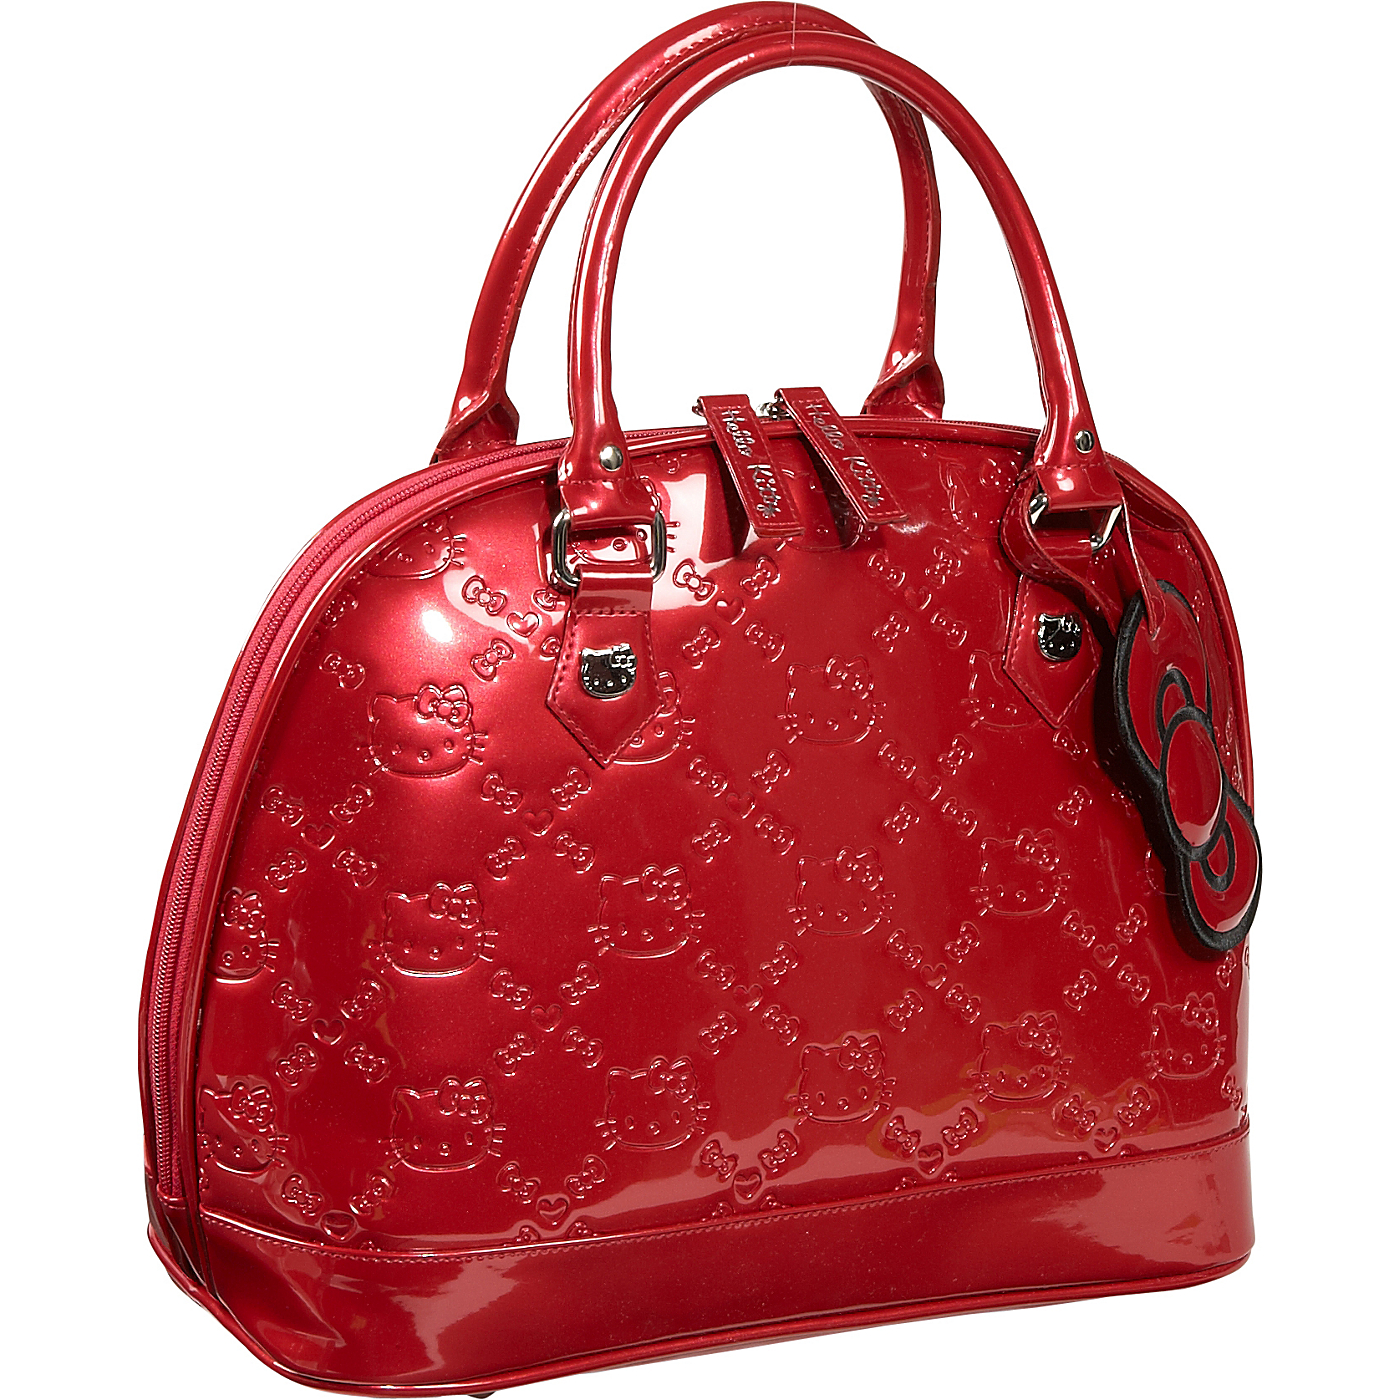 Loungefly Hello Kitty Tango Red Embossed Bag  60.00 on PopScreen 02b7c5bfceda6